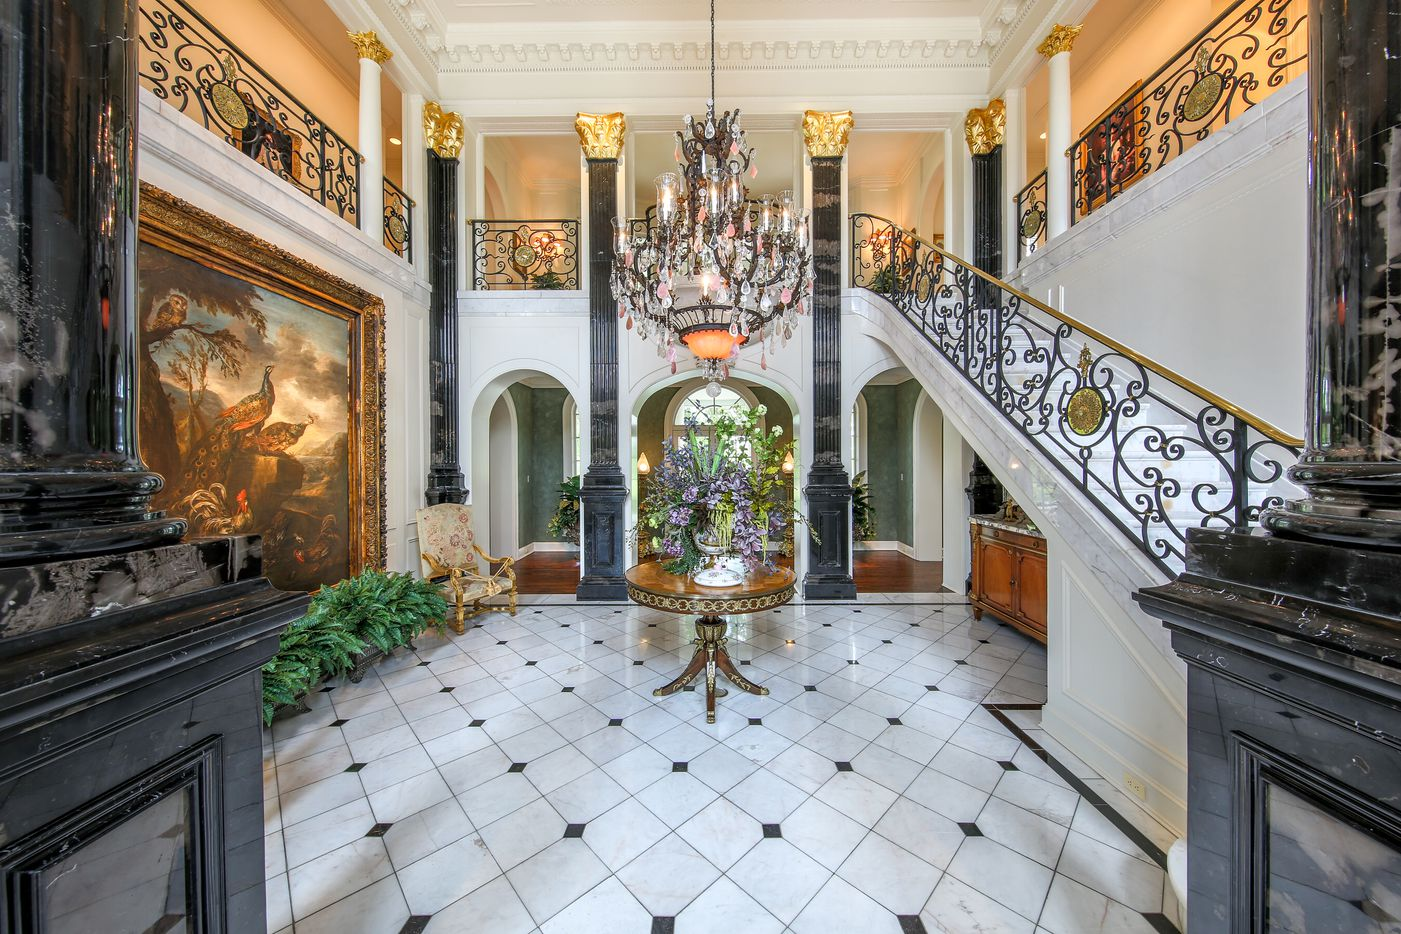 The grand house has 18,000 square feet.